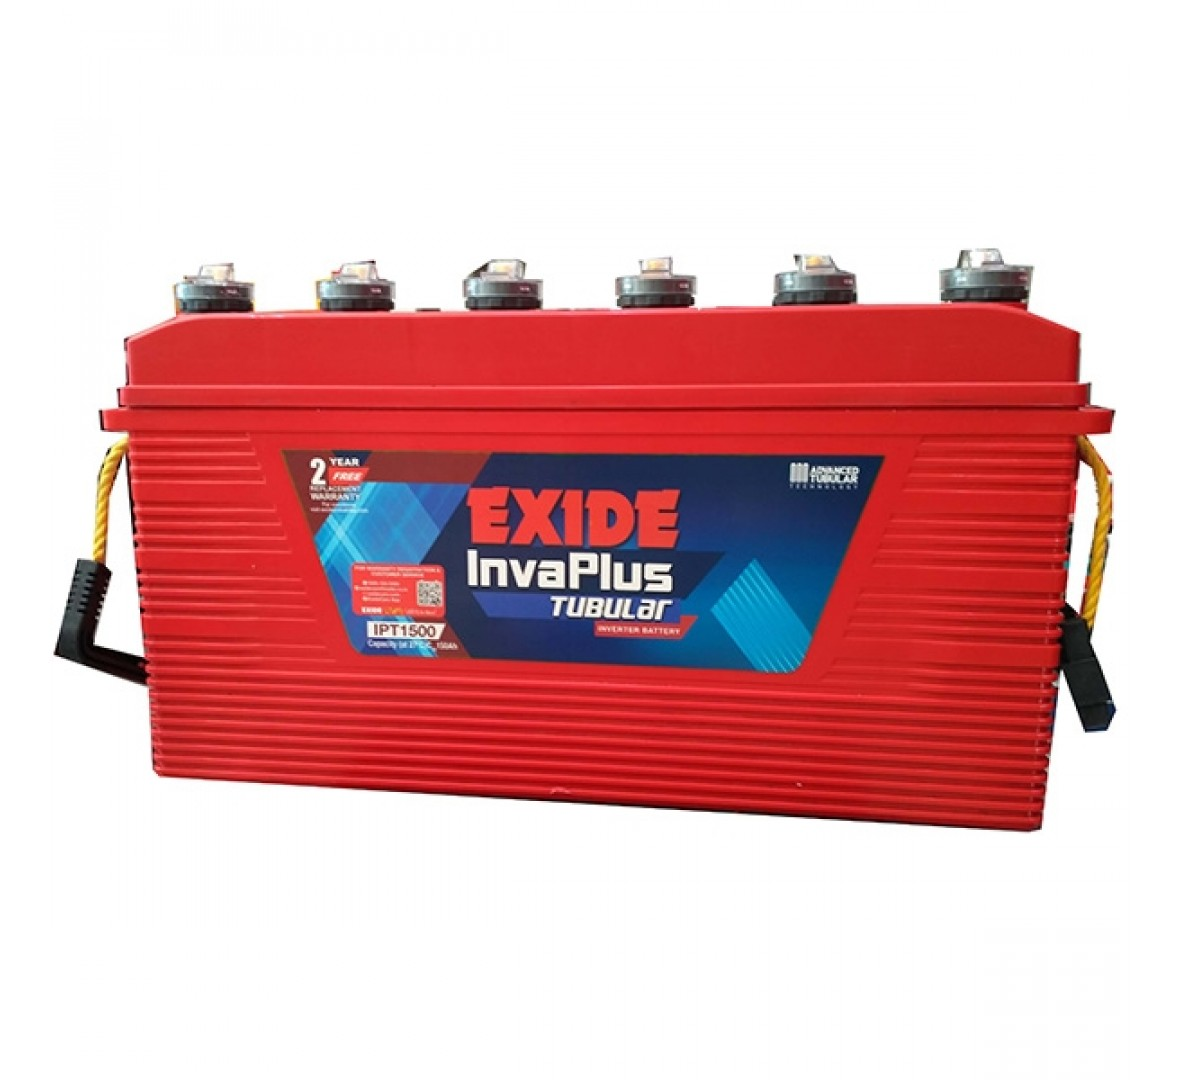 Exide Invaplus Ip1500 150Ah Inverter Battery